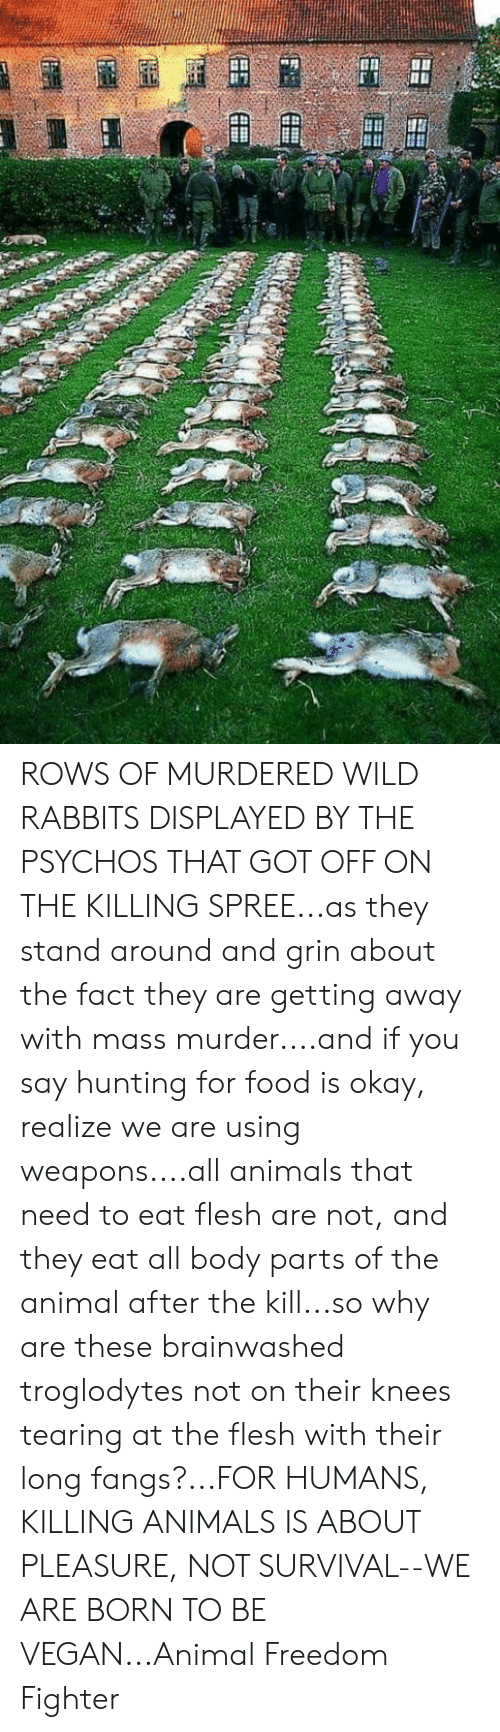 Animals, Food, and Memes: ROWS OF MURDERED WILD RABBITS DISPLAYED BY THE PSYCHOS THAT GOT OFF ON THE KILLING SPREE...as they stand around and grin about the fact they are getting away with mass murder....and if you say hunting for food is okay, realize we are using weapons....all animals that need to eat flesh are not, and they eat all body parts of the animal after the kill...so why are these brainwashed troglodytes not on their knees tearing at the flesh with their long fangs?...FOR HUMANS, KILLING ANIMALS IS ABOUT PLEASURE, NOT SURVIVAL--WE ARE BORN TO BE VEGAN...Animal Freedom Fighter